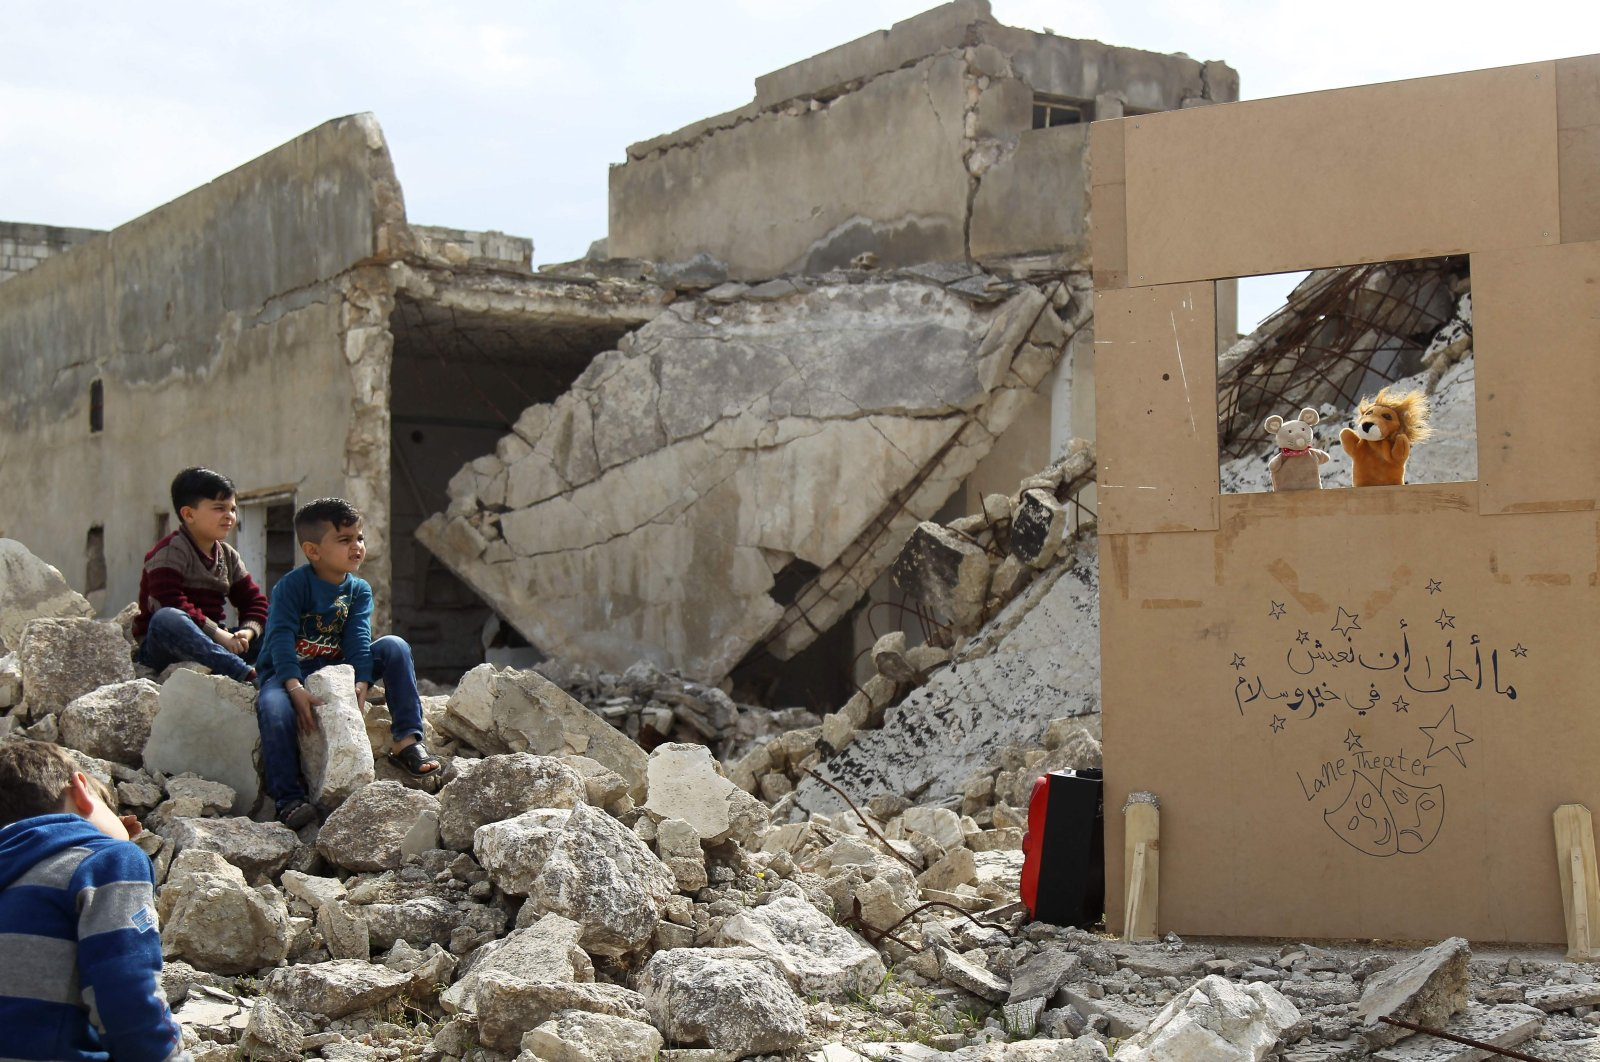 Children watch a puppet show performed by a Syrian actor, through a makeshift puppet theater set up among the rubble of collapsed buildings in the town of Saraqib in the opposition-held northern Idlib province, March 27, 2019. (AFP Photo)